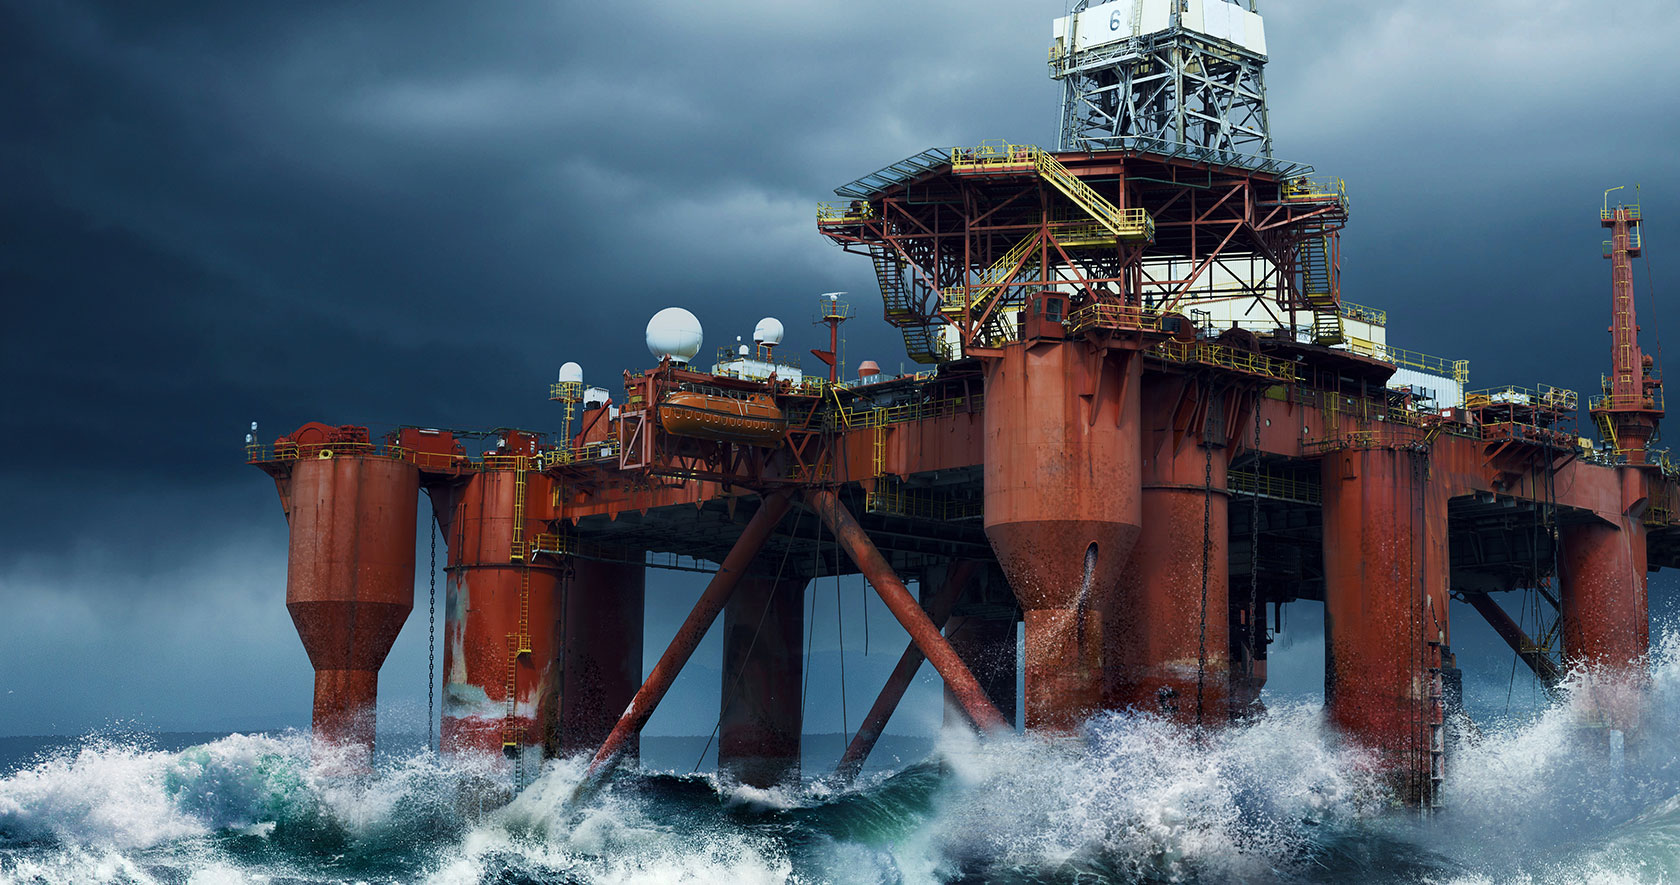 An offshore rig in stormy seas.